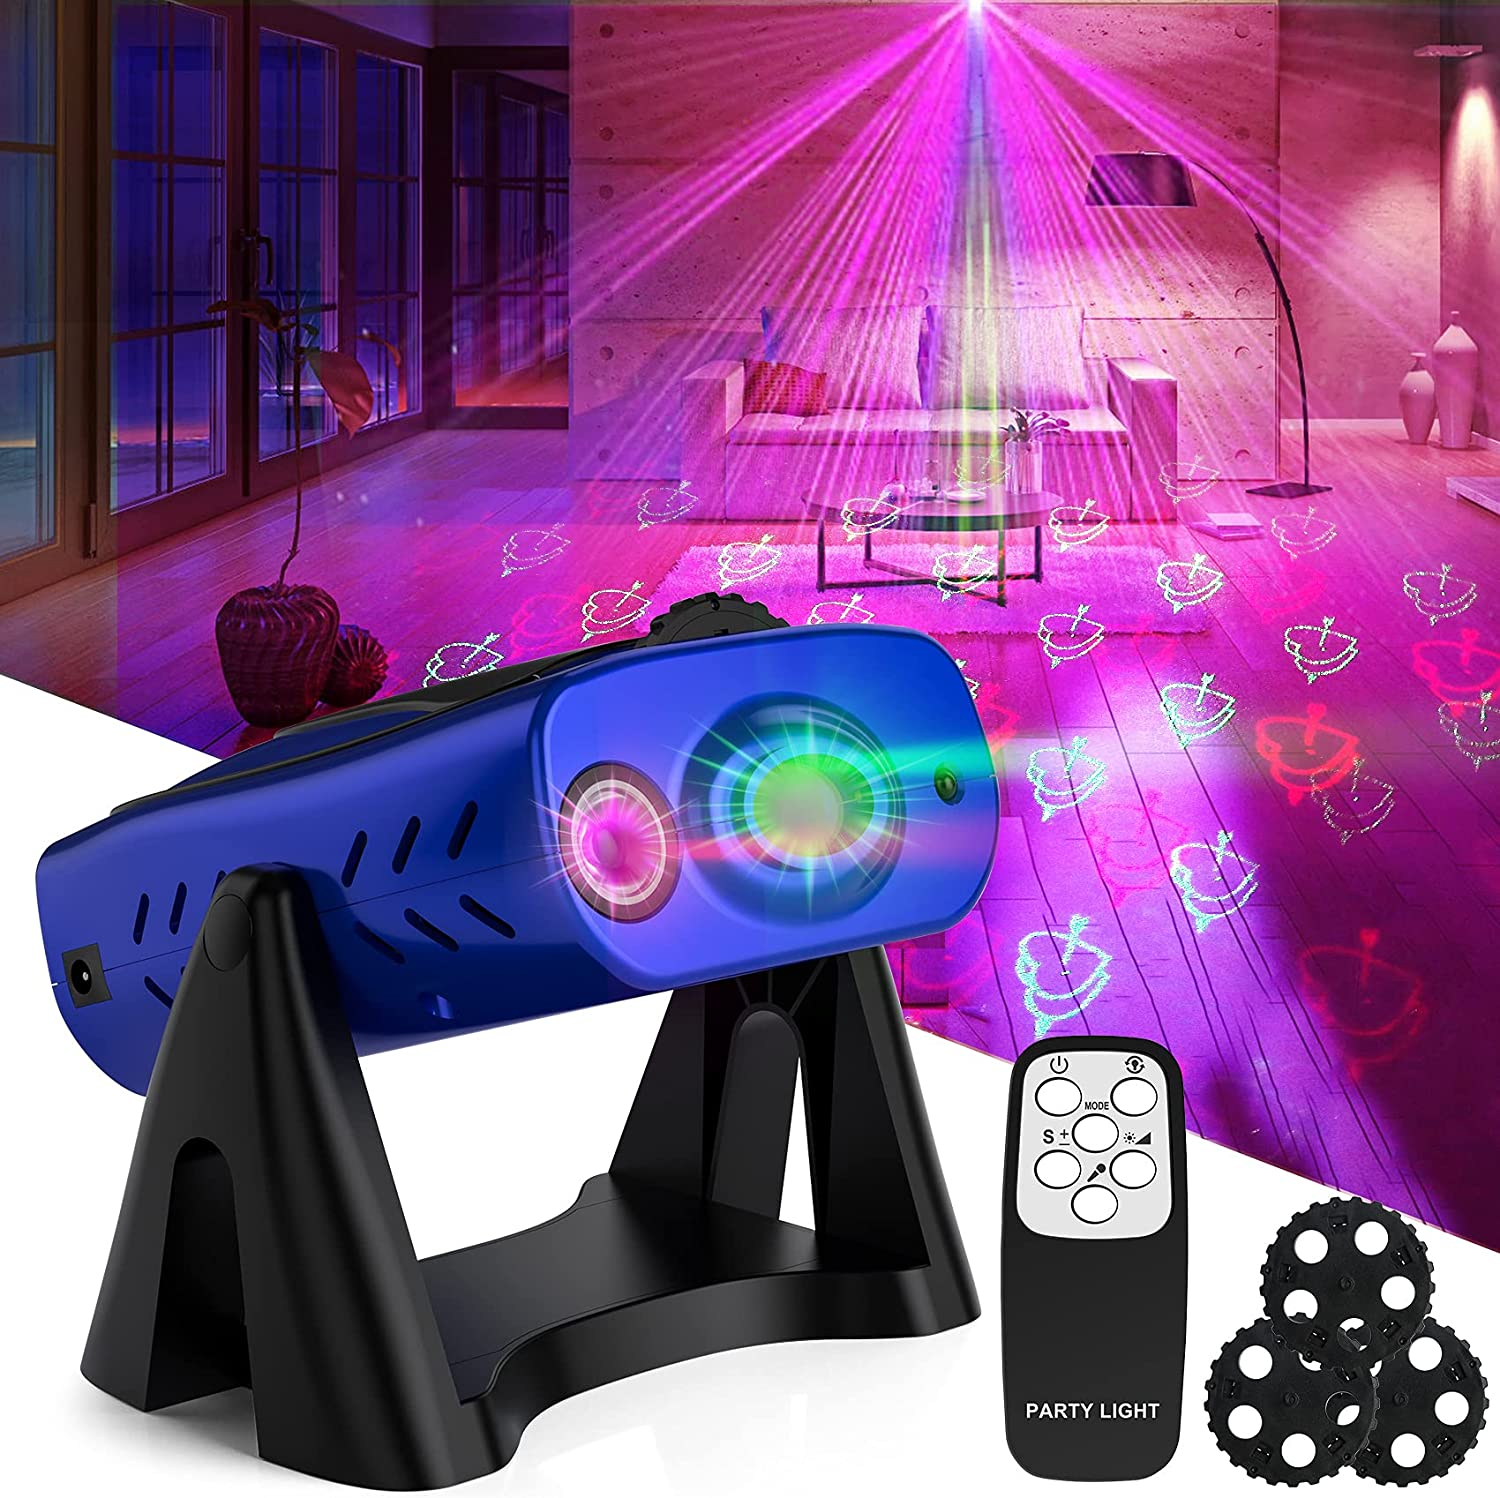 Party Lights Dj store Disco Sound Strobe Flash Light Ranking TOP6 Activated